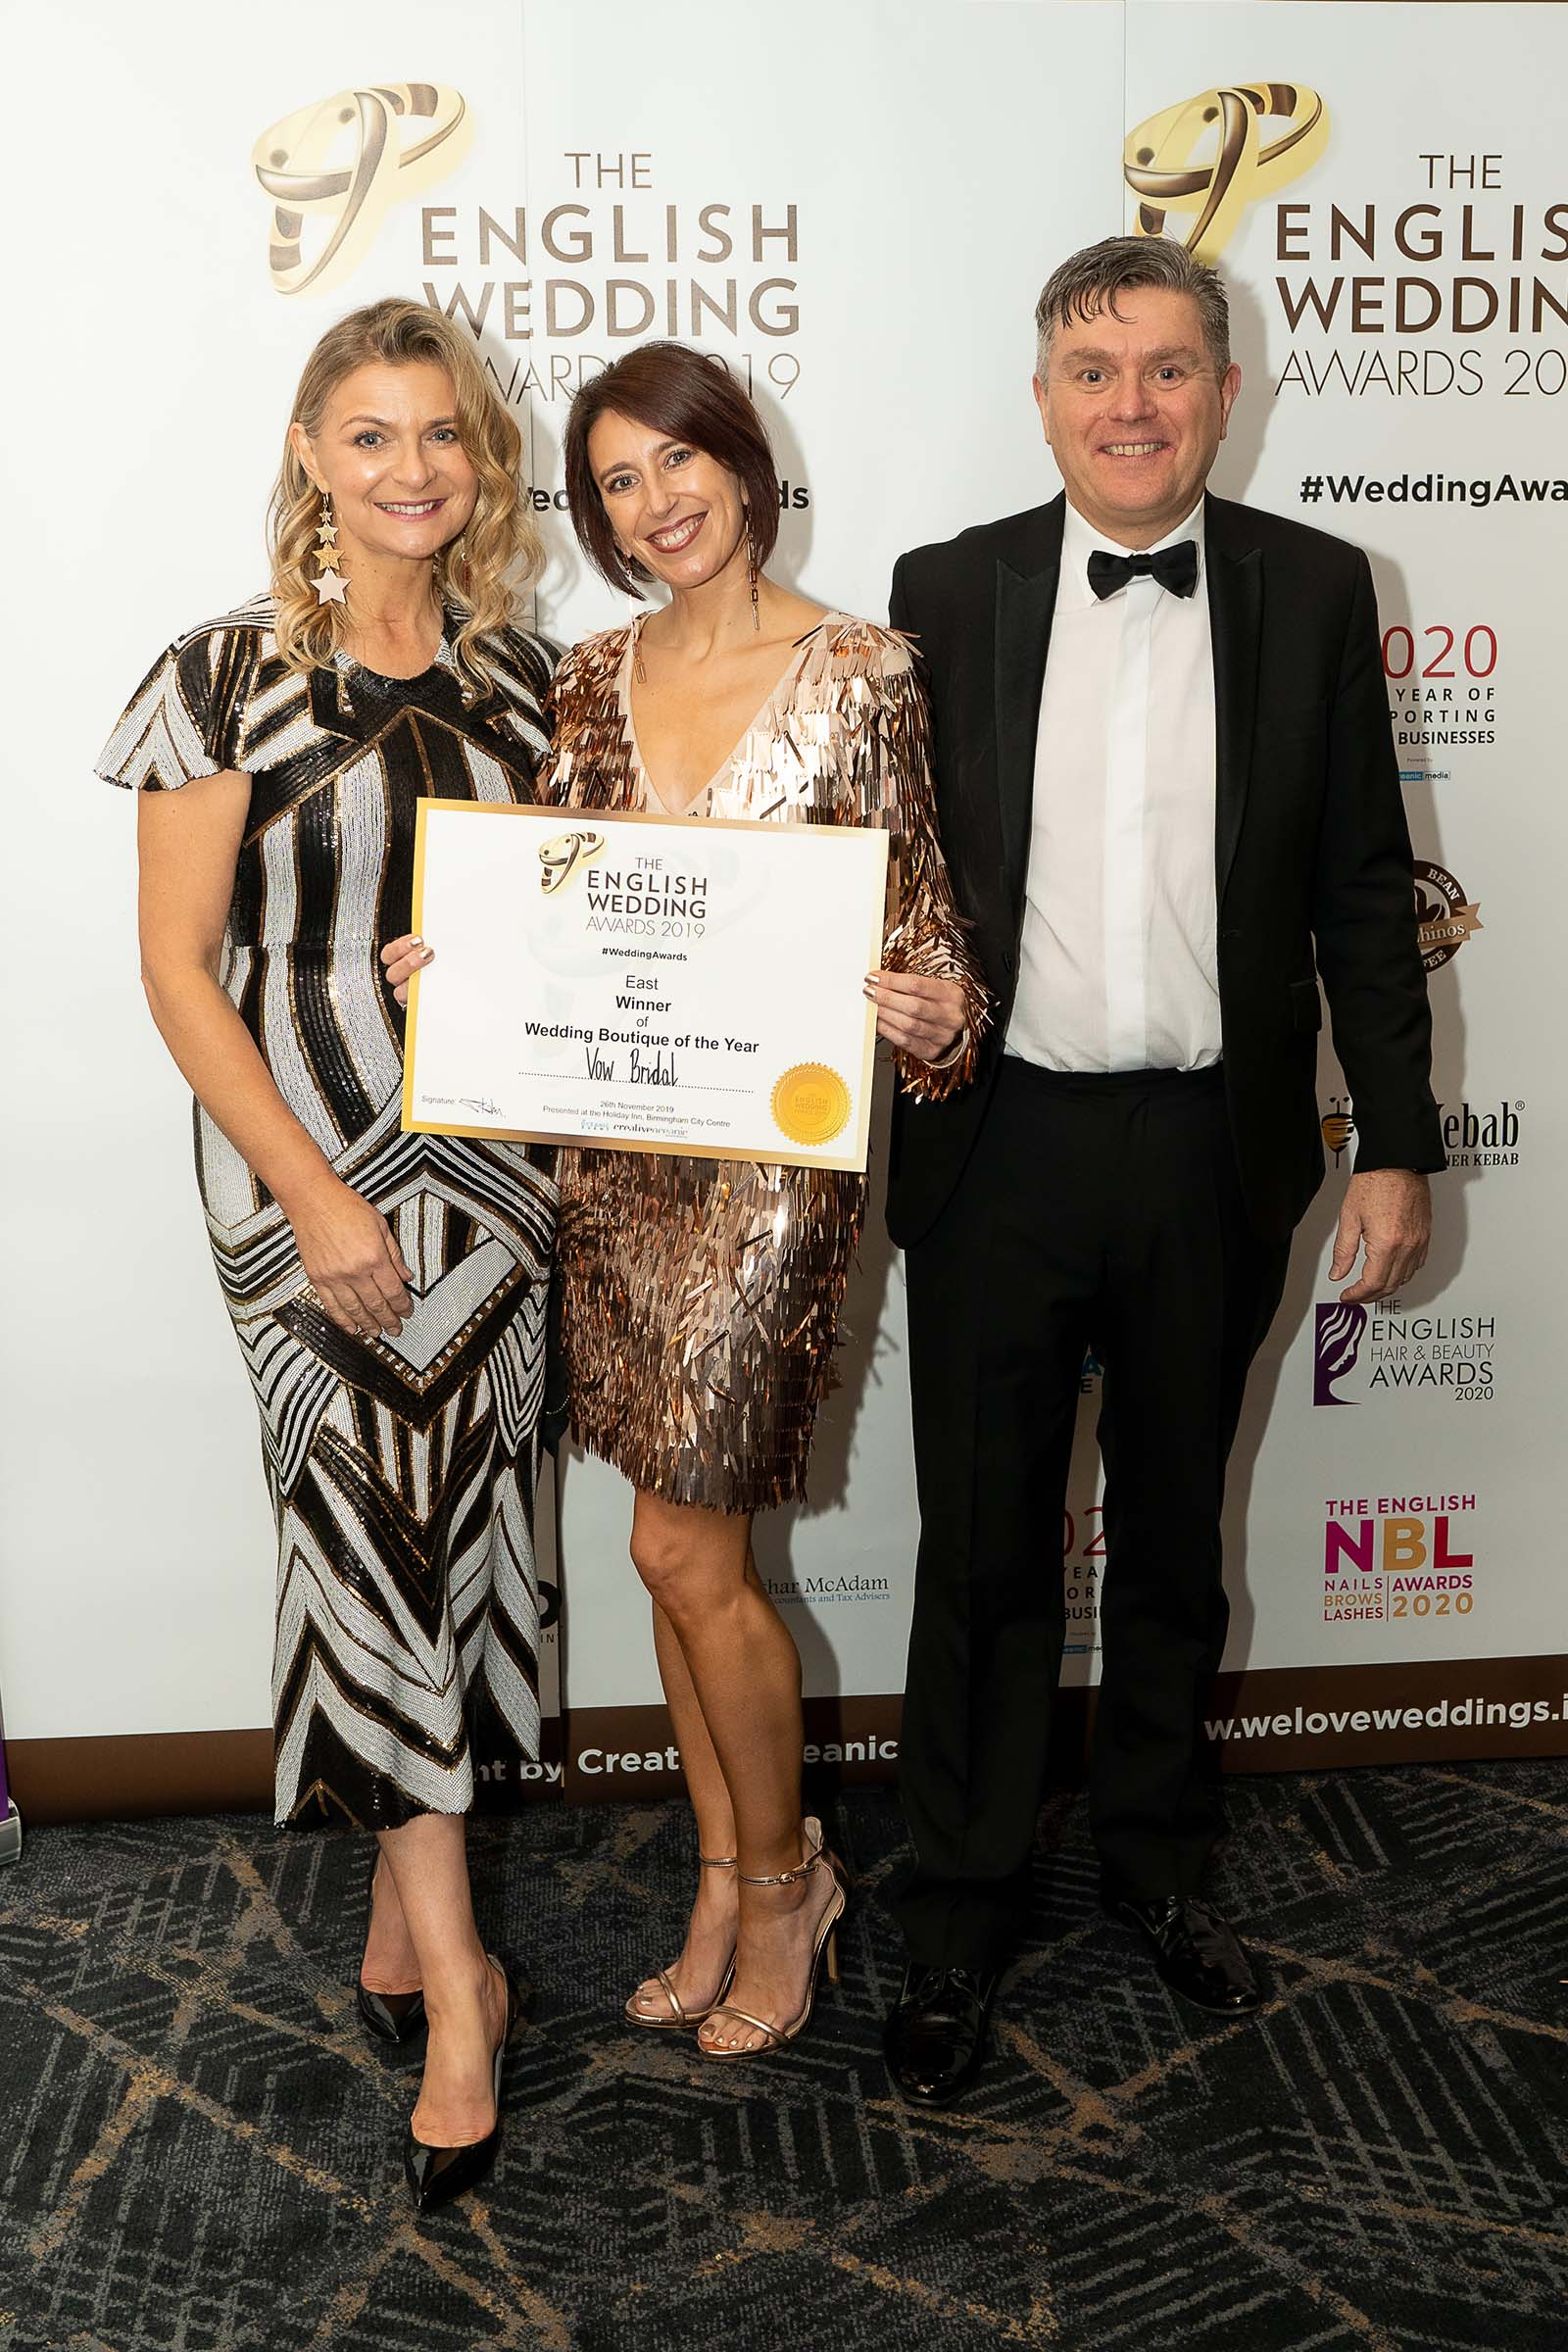 Vow Bridal Gallery The Award Winners Peterborough Cambridgeshire